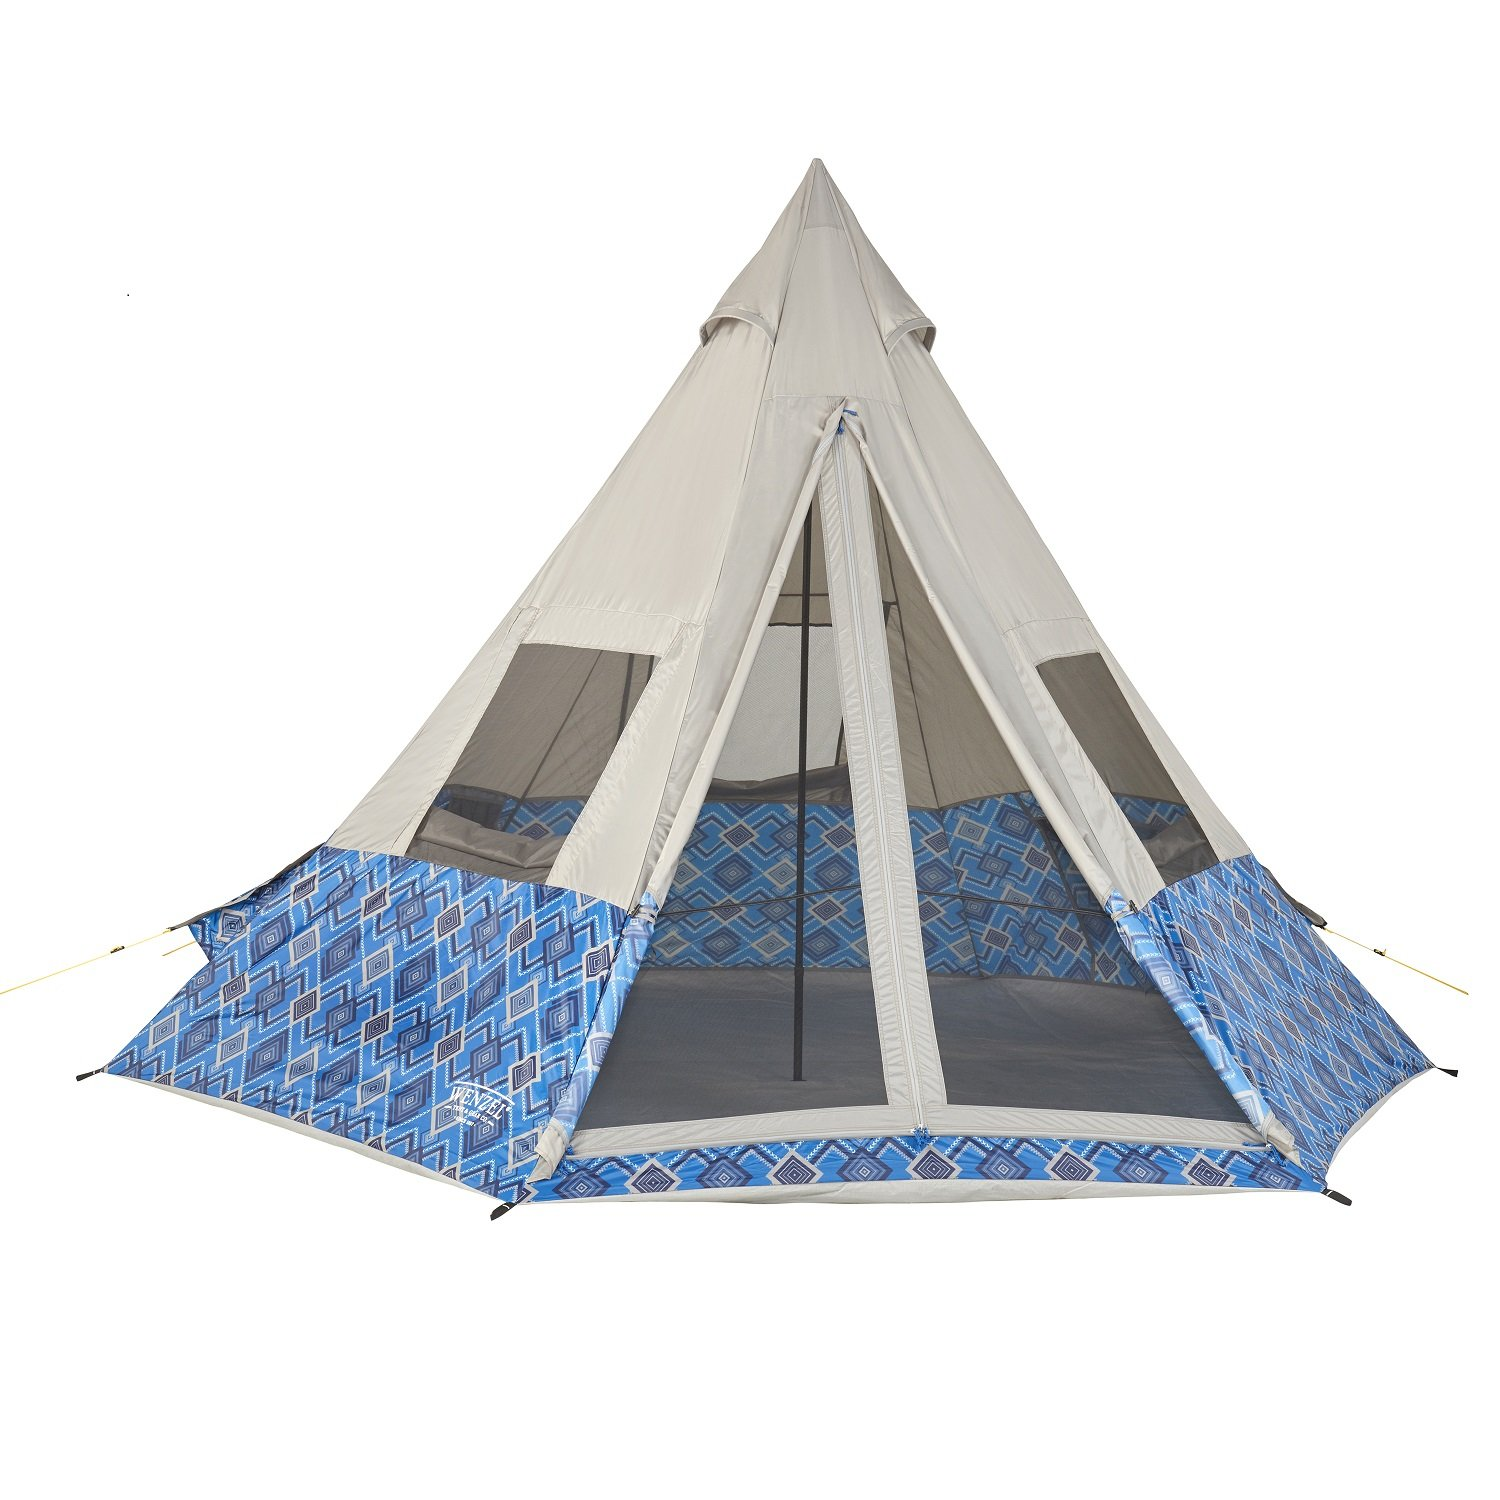 Wenzel 11 5 x 10 Foot Shenanigan 5 Person Teepee Camping Tent